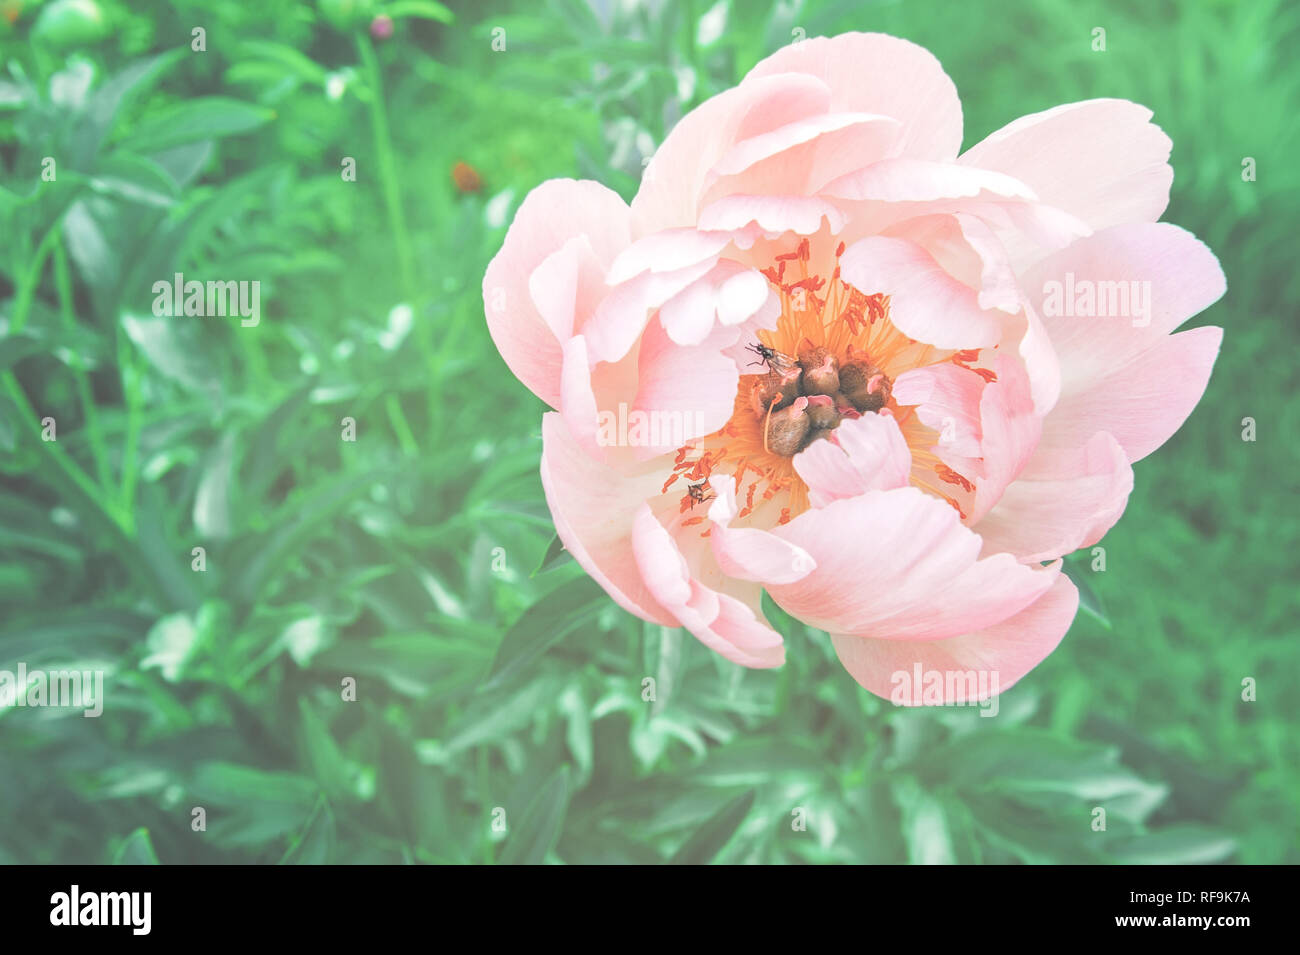 Gentle pink peony flower on a beautiful background. Spring theme. Copy space. - Stock Image